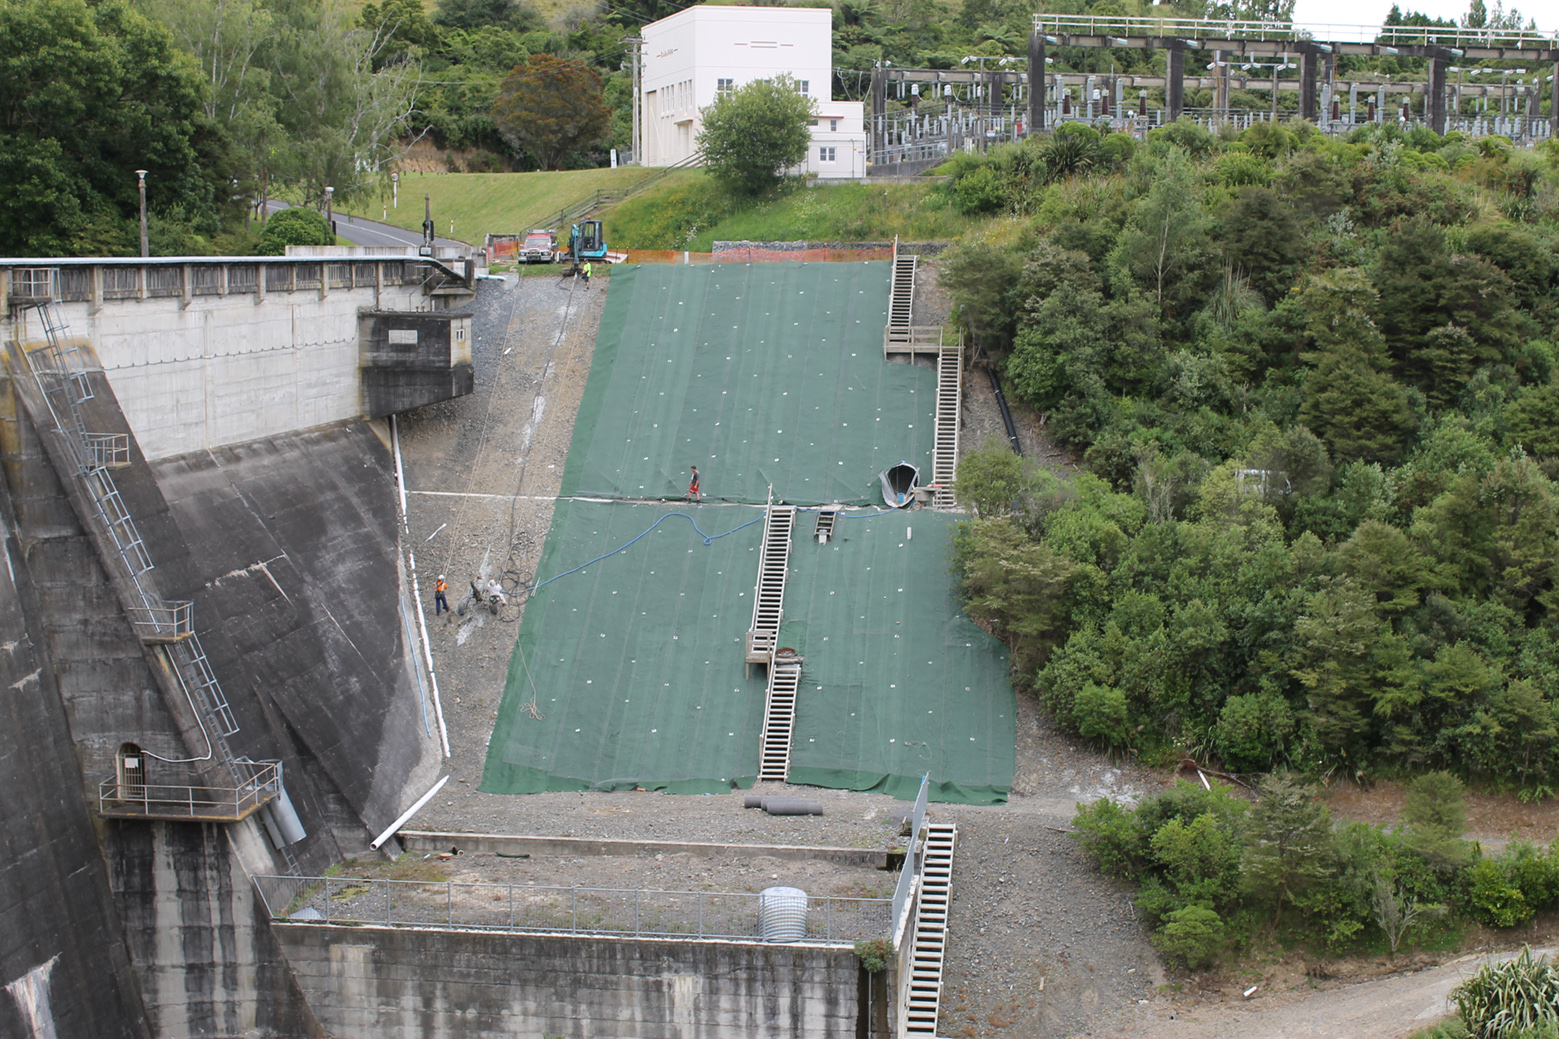 Karapiro Hydro Dam – Waikato, New Zealand installed with Platipus S4 ARGS